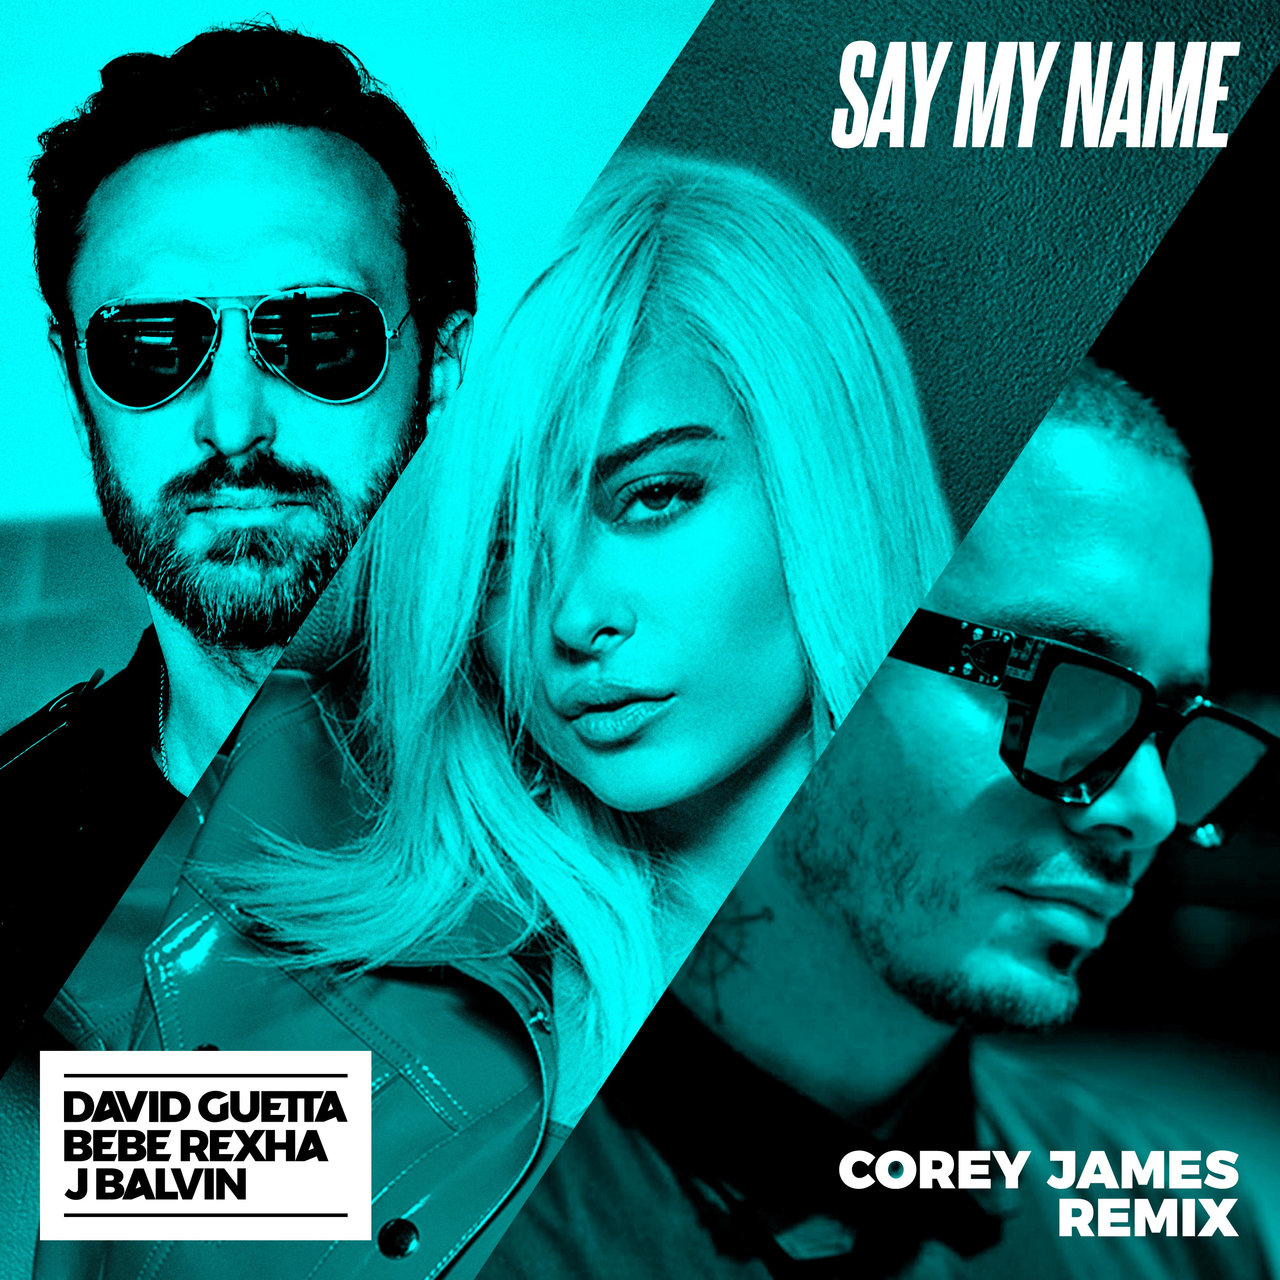 Say My Name (feat. Bebe Rexha & J Balvin) [Corey James Remix]